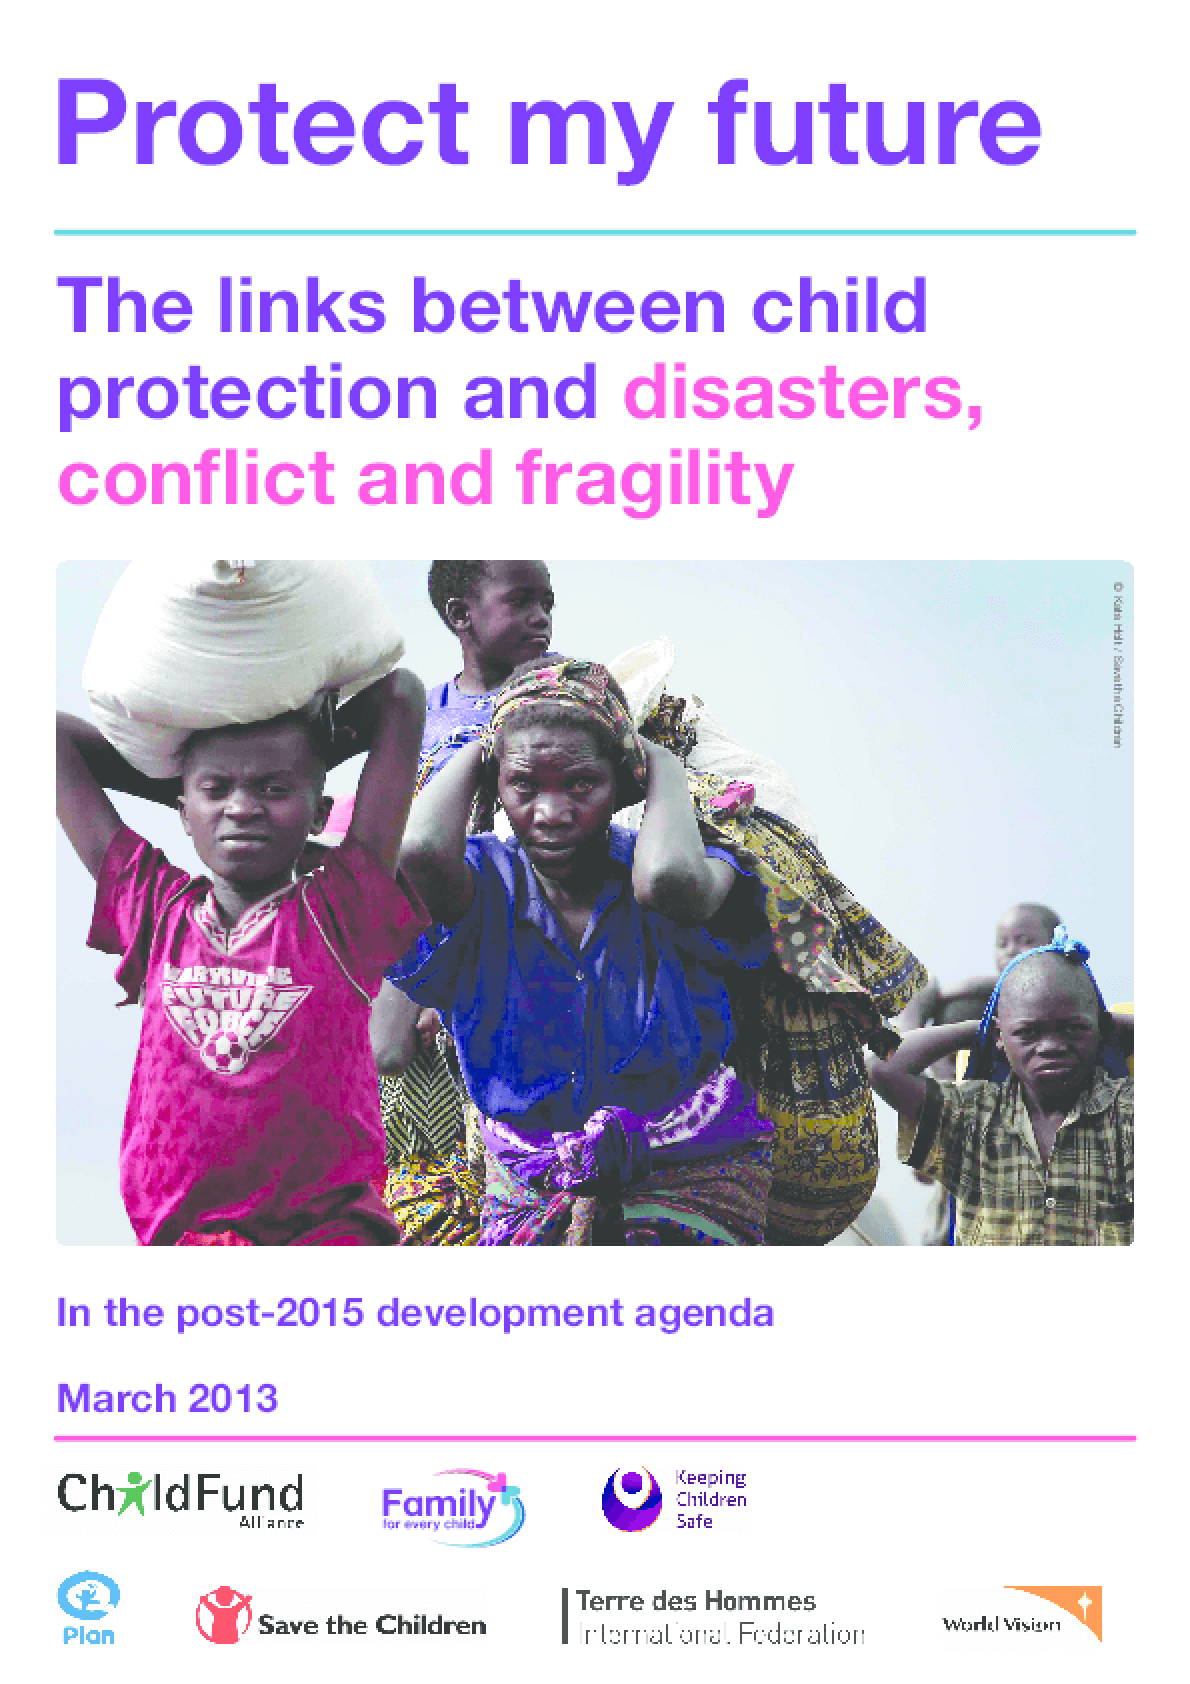 Protect My Future: The Links Between Child Protection and Disasters, Conflict and Fragility in the Post-2015 Development Agenda